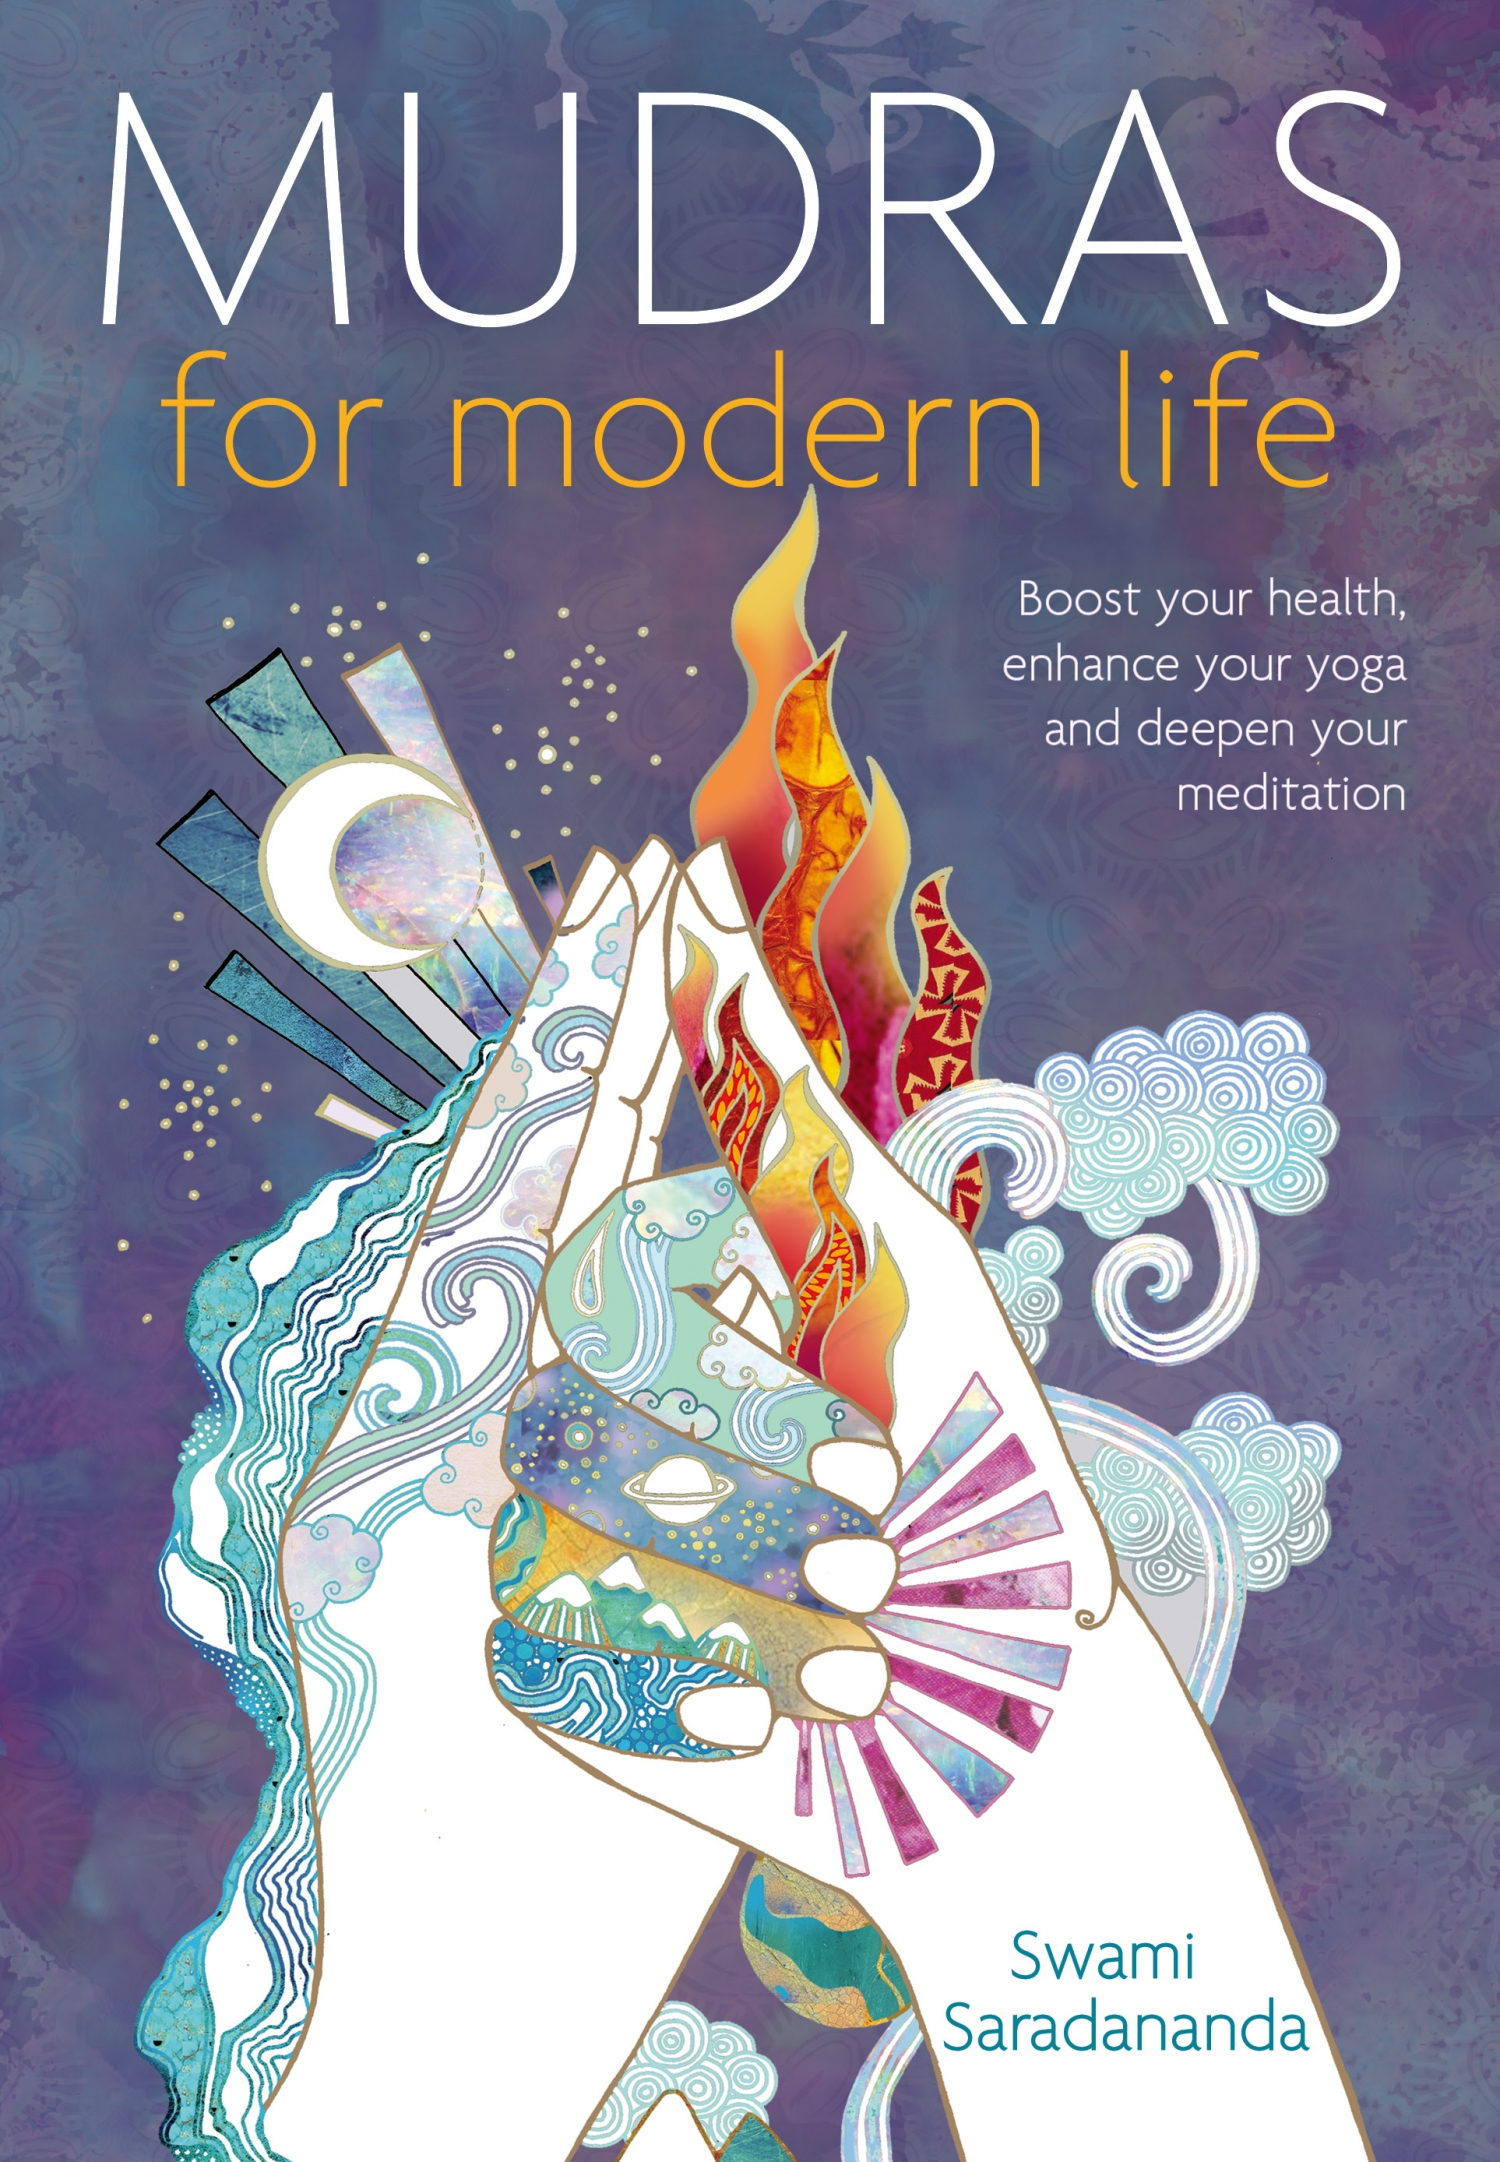 Modern Book Cover Yoga : Review of mudras for modern life